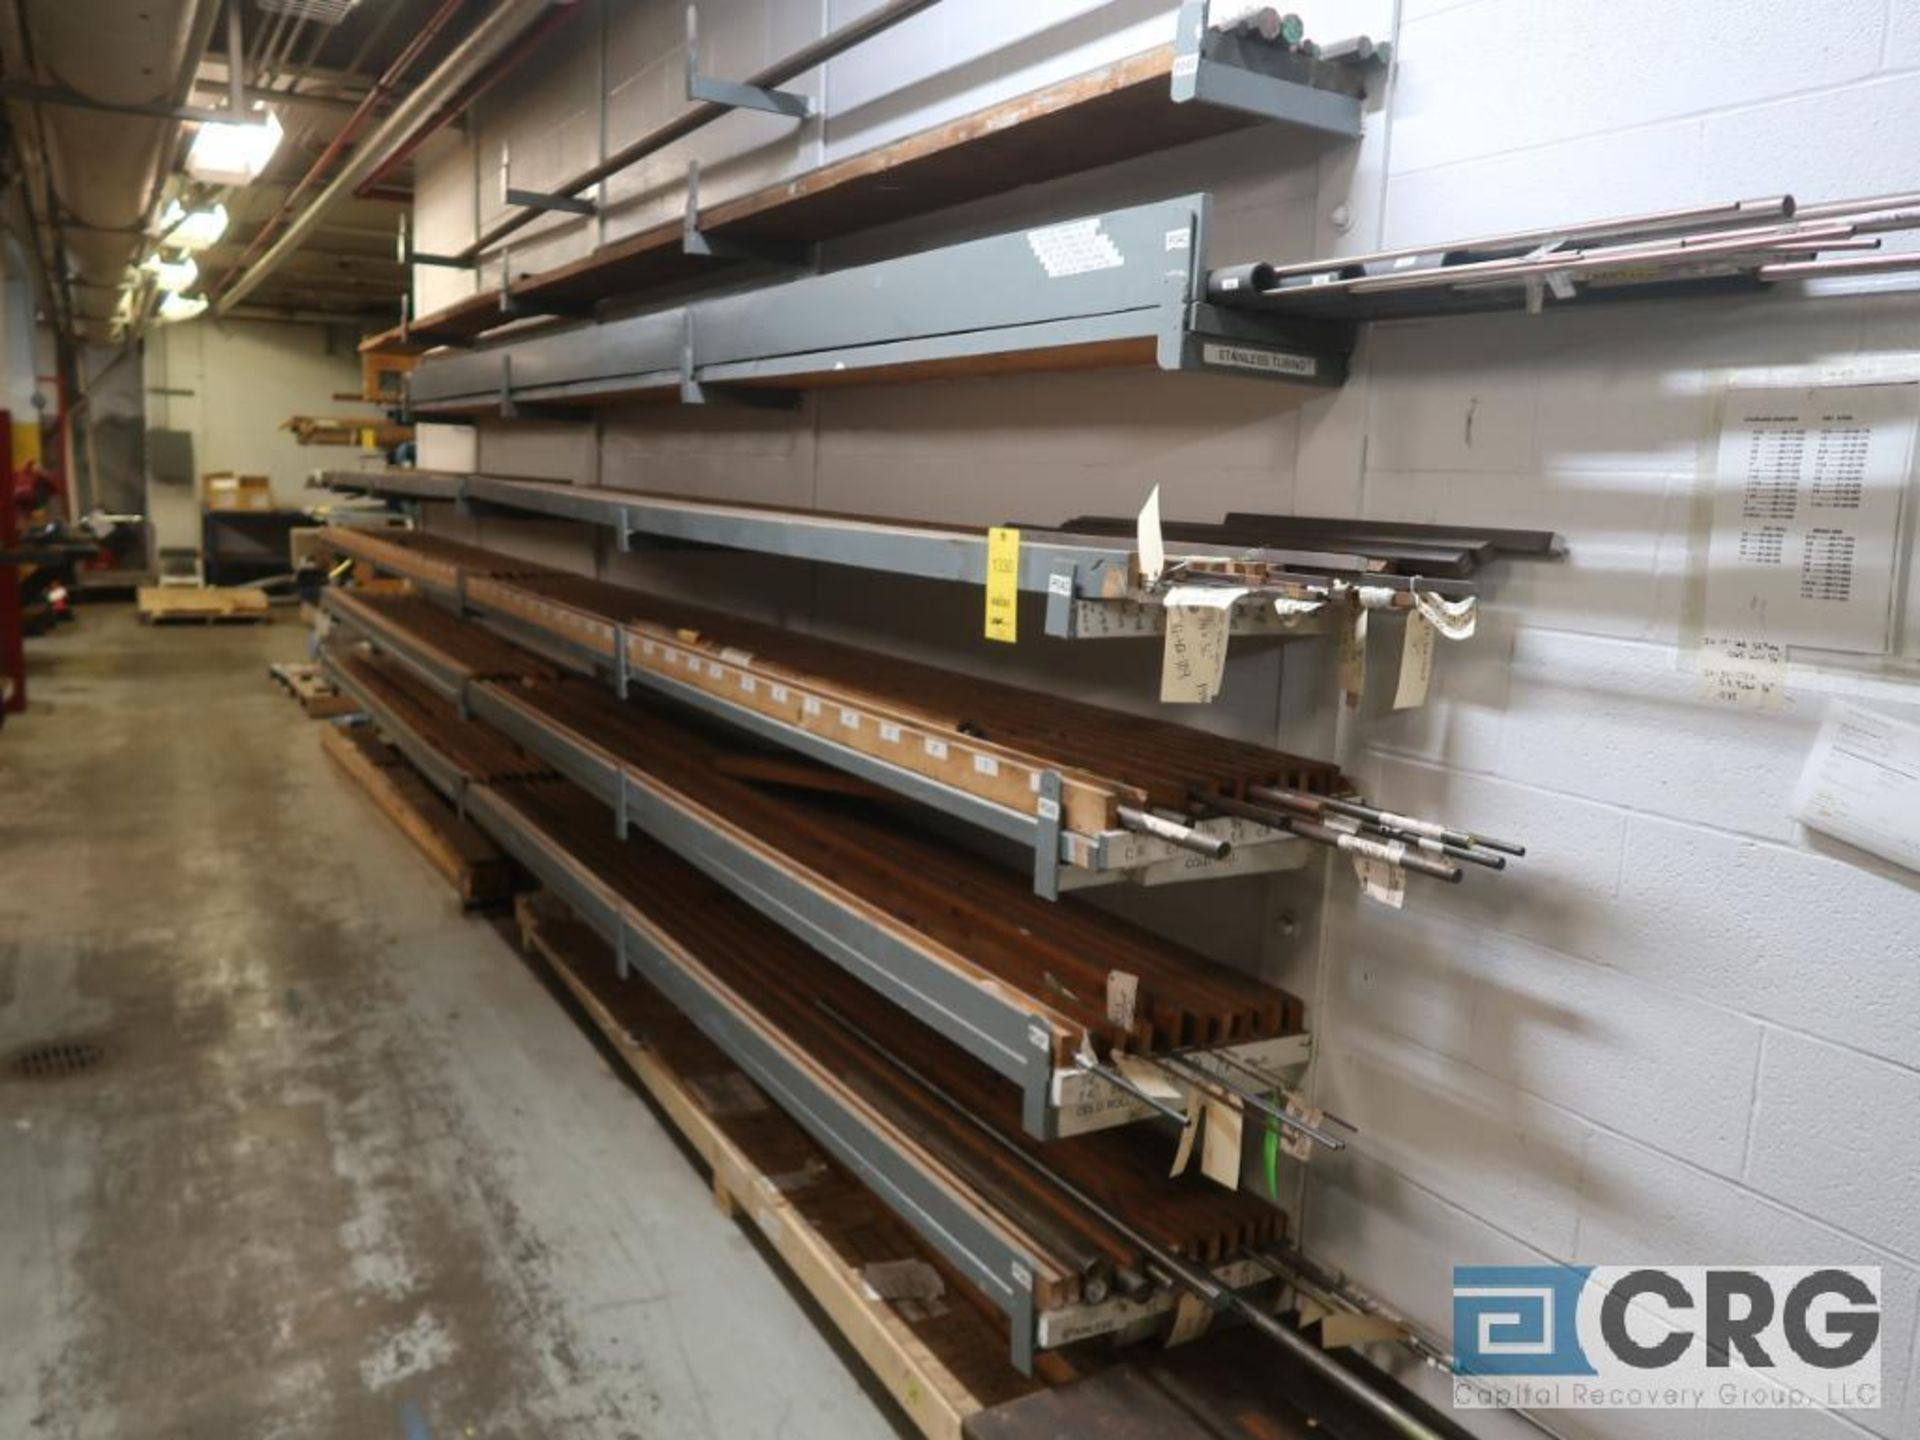 Wall mount rack with cold roll shaft, stainless tubing, key steel, and conduit pipe (Store - Image 2 of 7